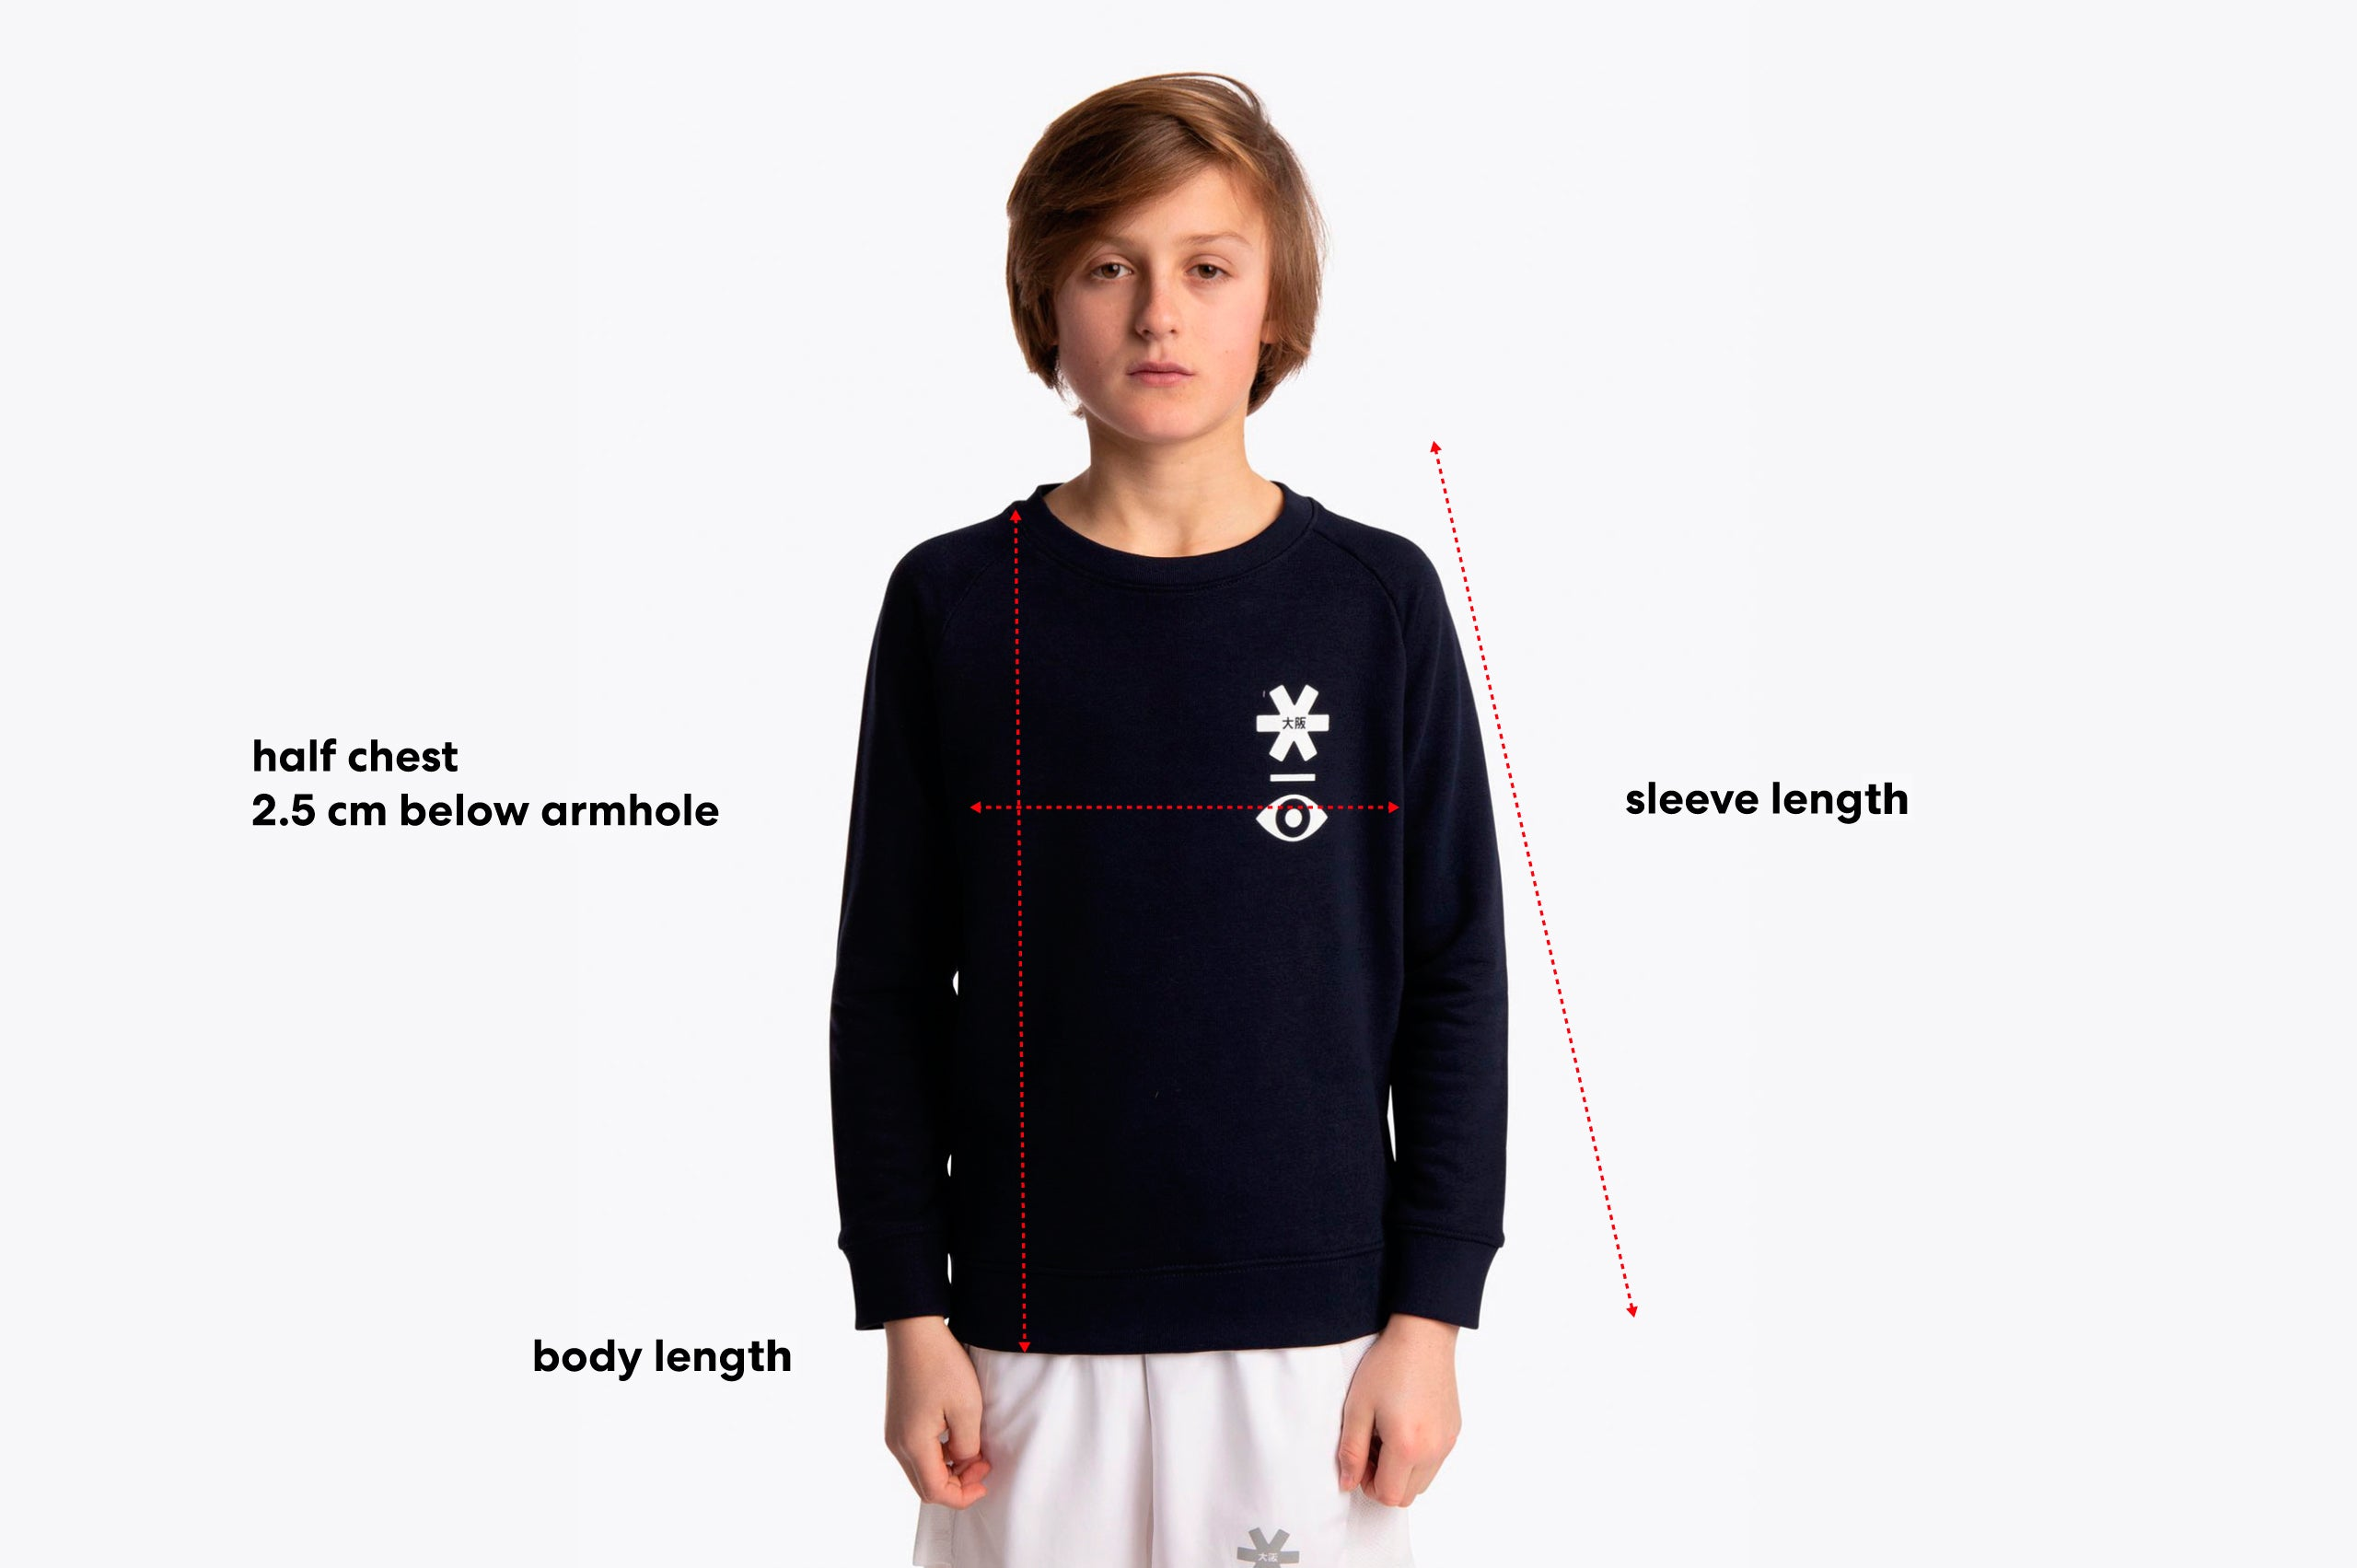 Size guide of a kids sweater